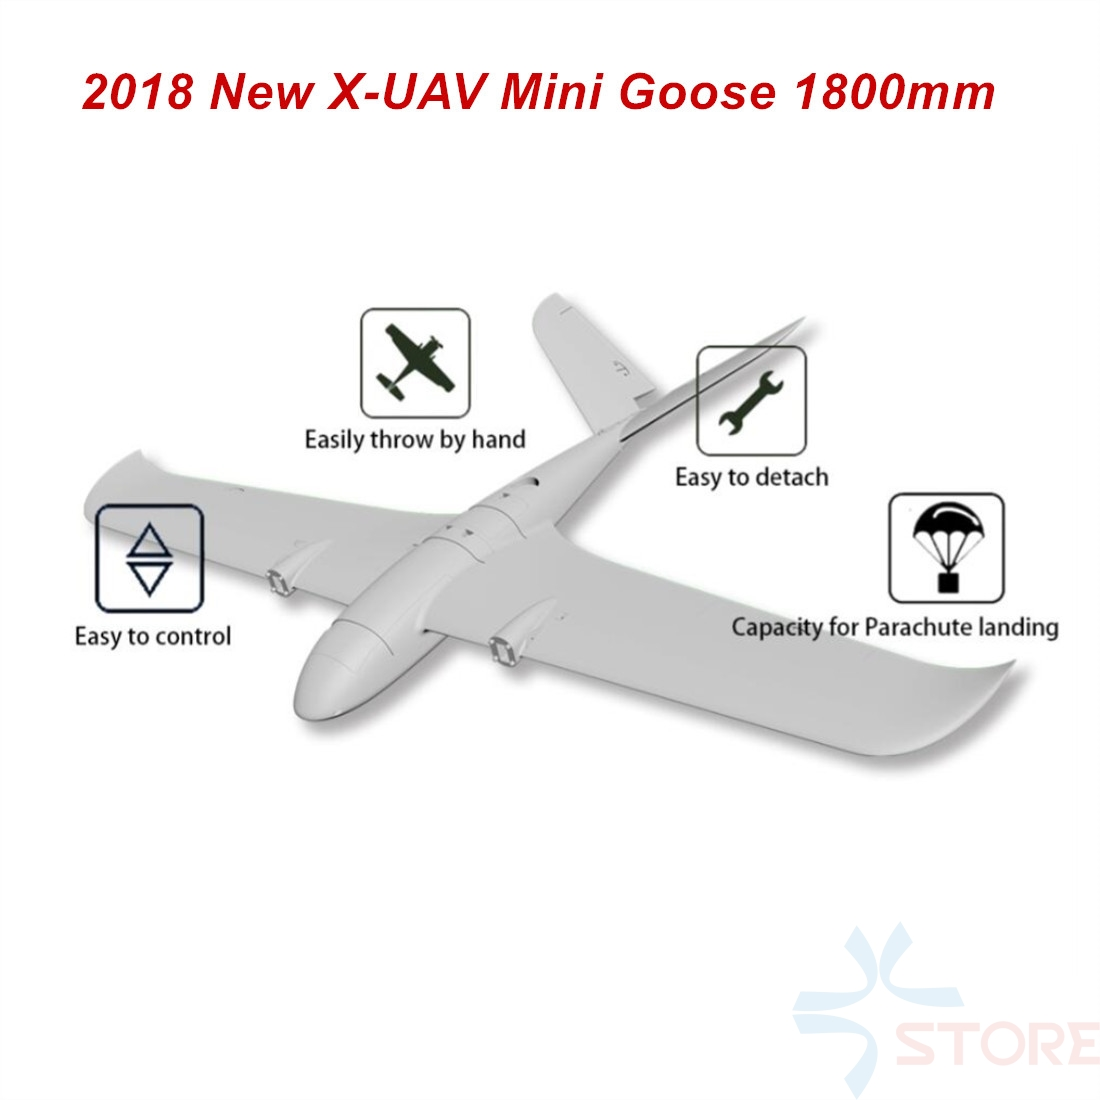 X-UAV TJL Mini Goose 1800mm Wingspan EPO Fixed Wings RC Airplane Frame FPV/Mapping believer uav 1960mm wingspan epo portable aerial survey aircraft rc airplane kit best designed mapping platform as clouds